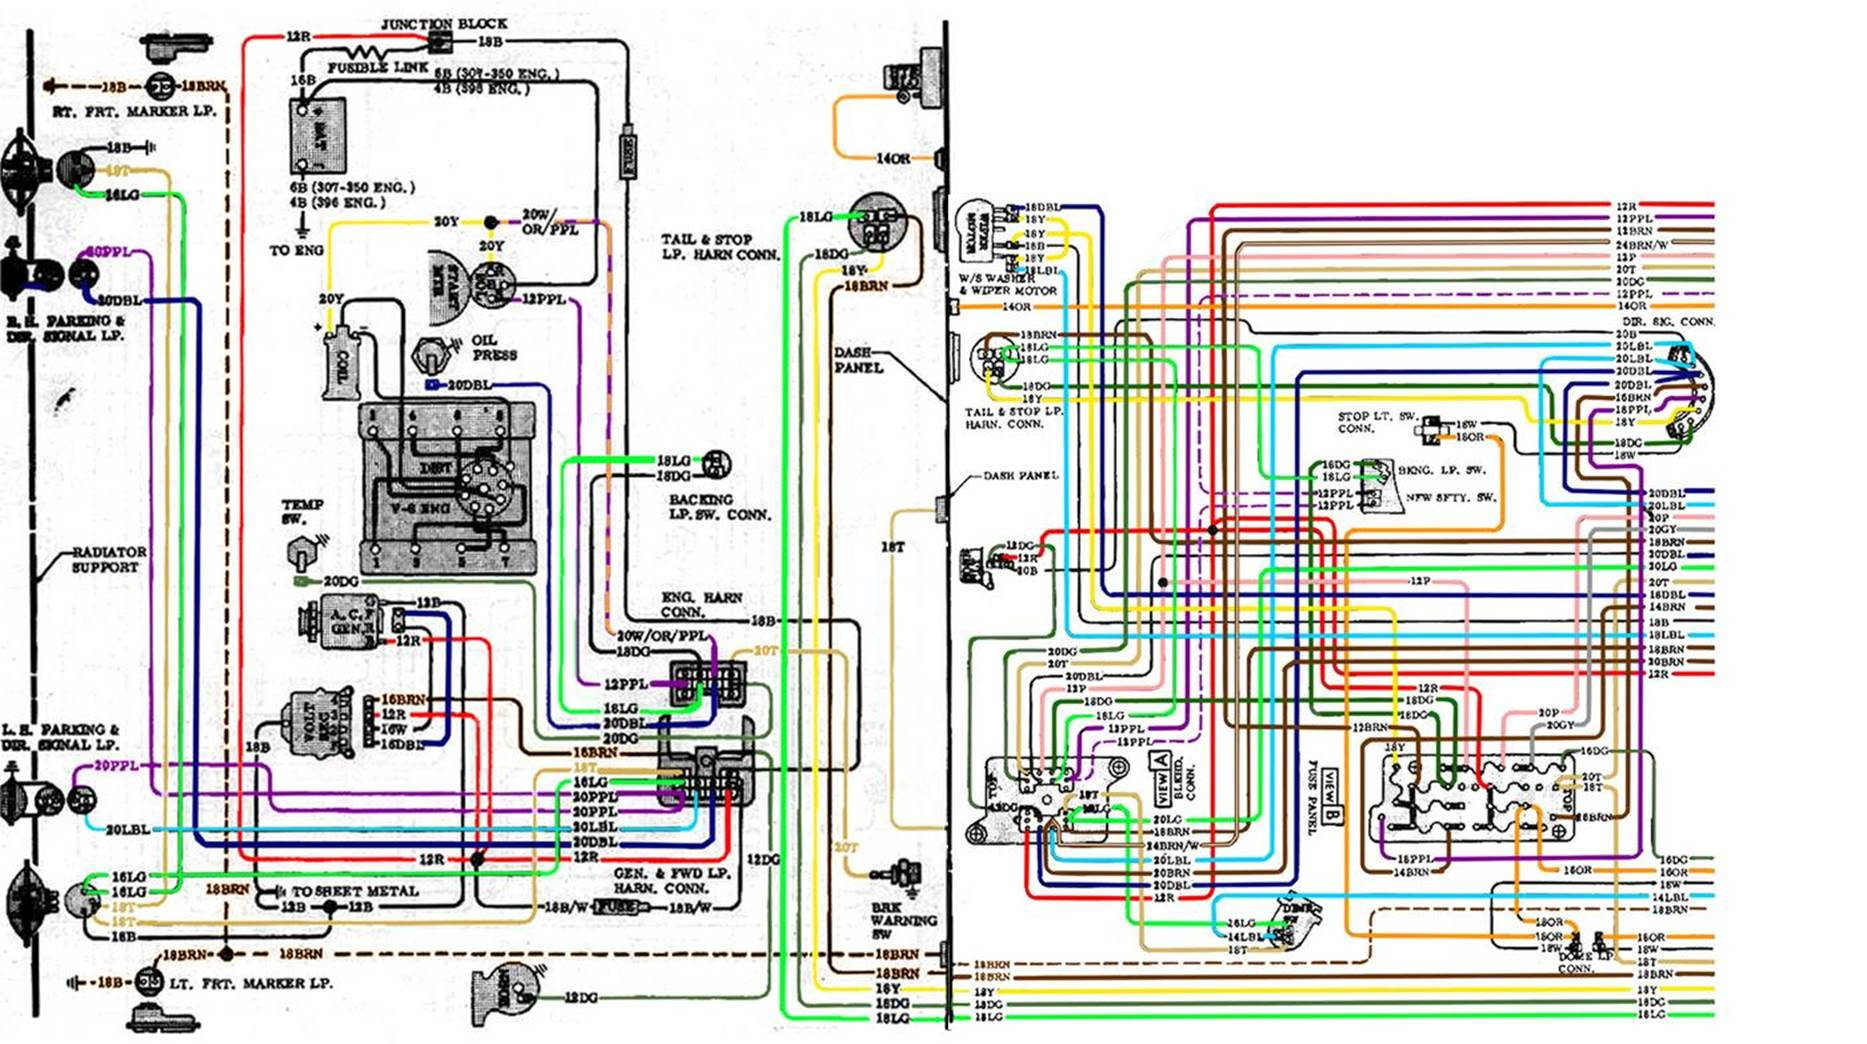 image002 67 72 chevy wiring diagram wiring diagram for 67 to 72 chevy truck at readyjetset.co